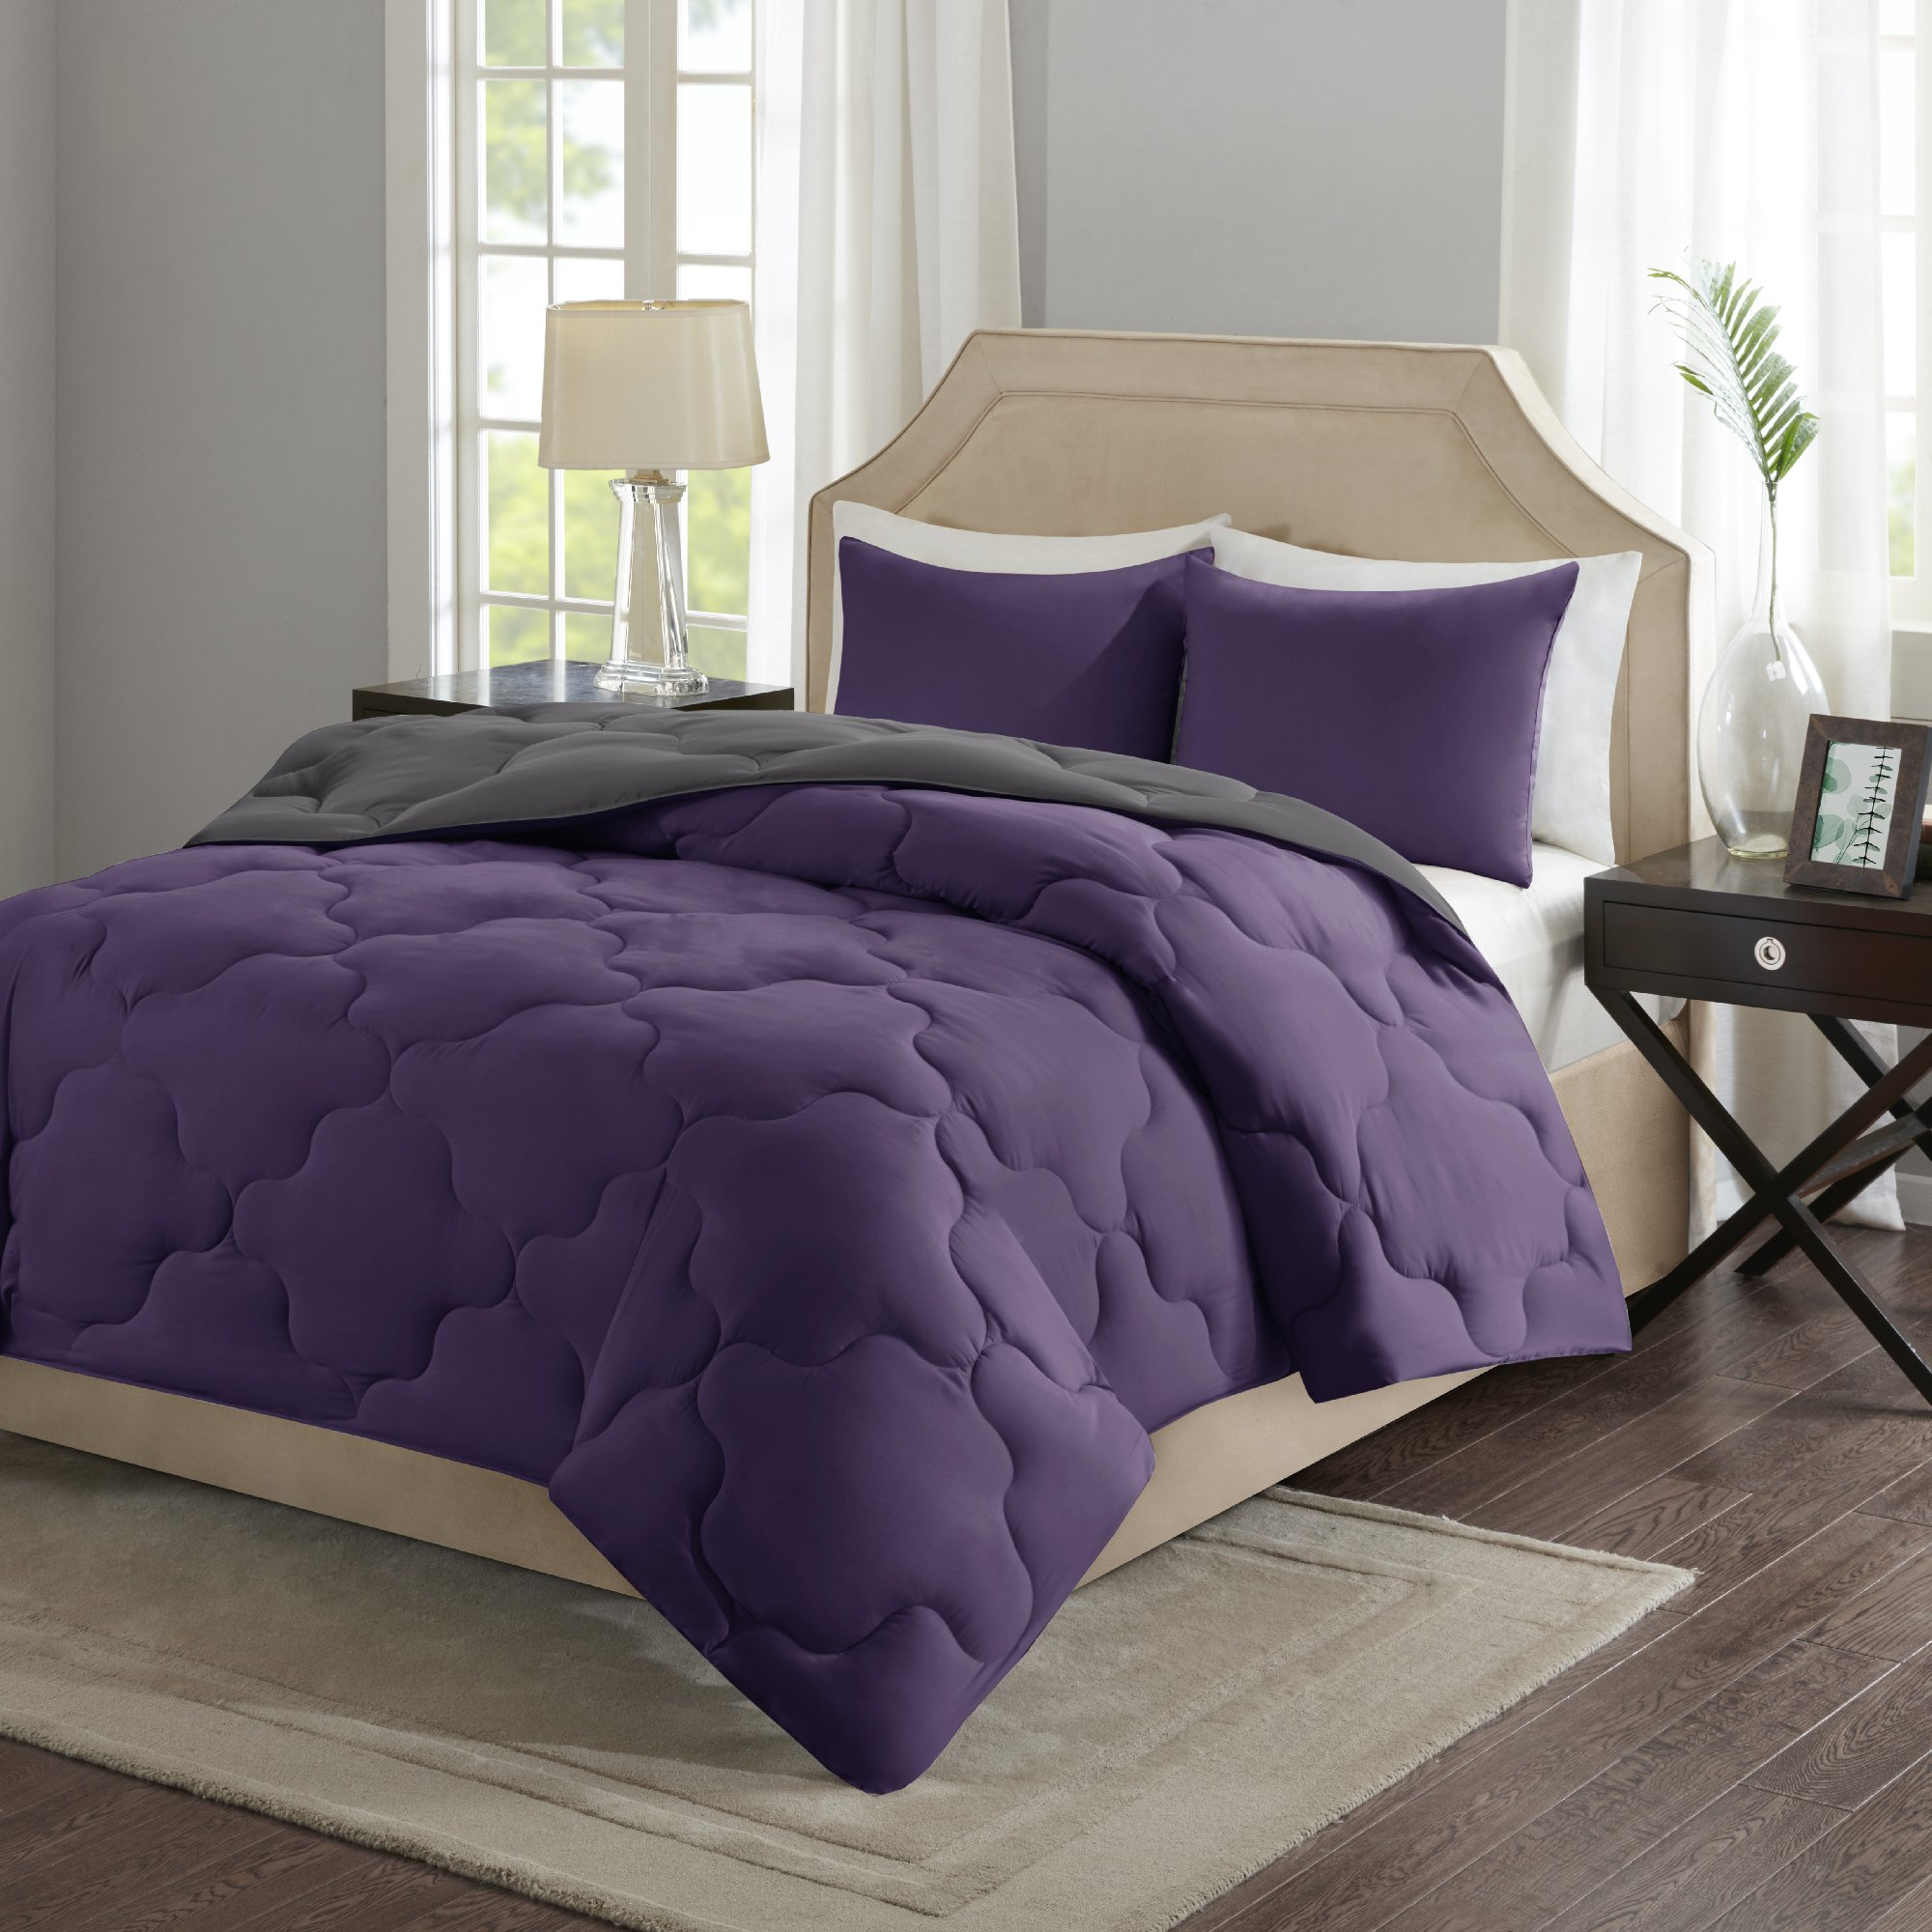 Comfort Spaces – Vixie Reversible Goose Down Alternative Comforter Mini Set - 3 Piece – Purple and Charcoal – Stitched Geometrical Diamond Pattern – Full/Queen size, includes 1 Comforter, 2 Shams